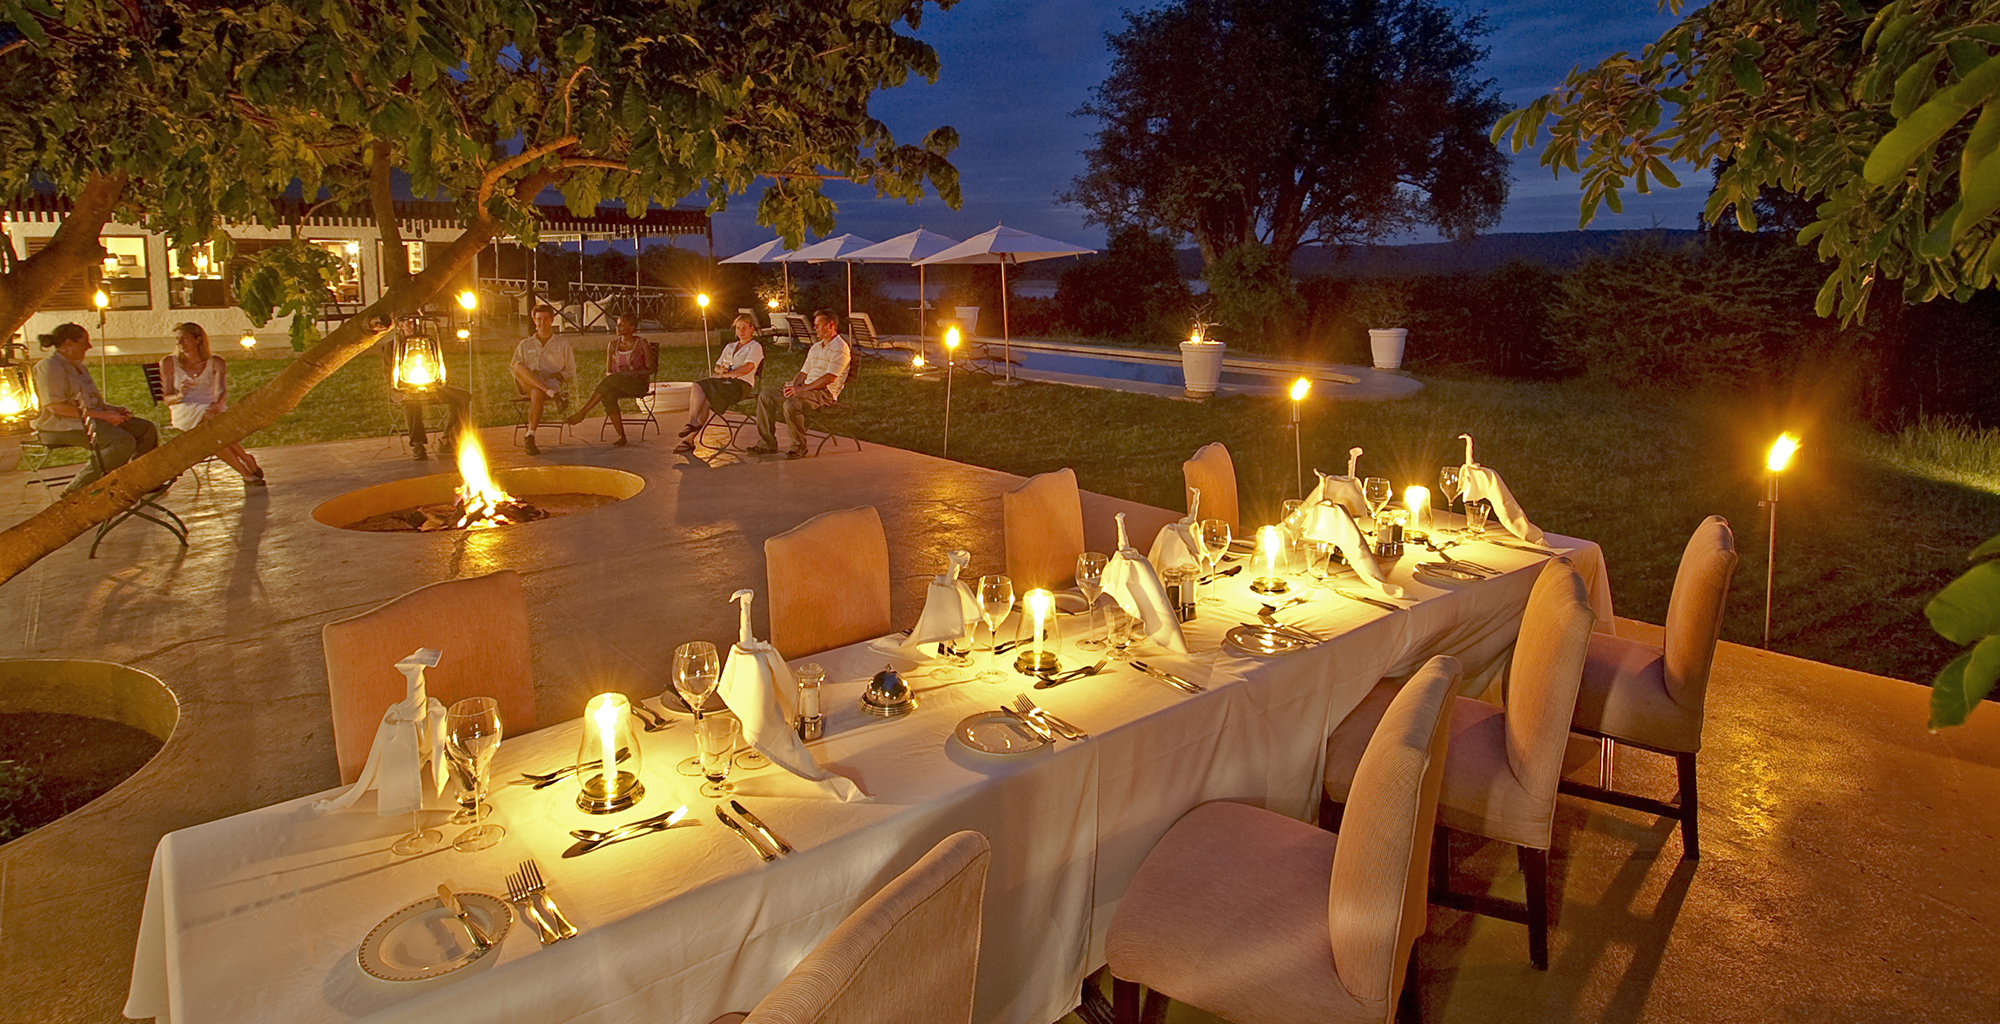 Zambia-Chichele-Presidential-Dining